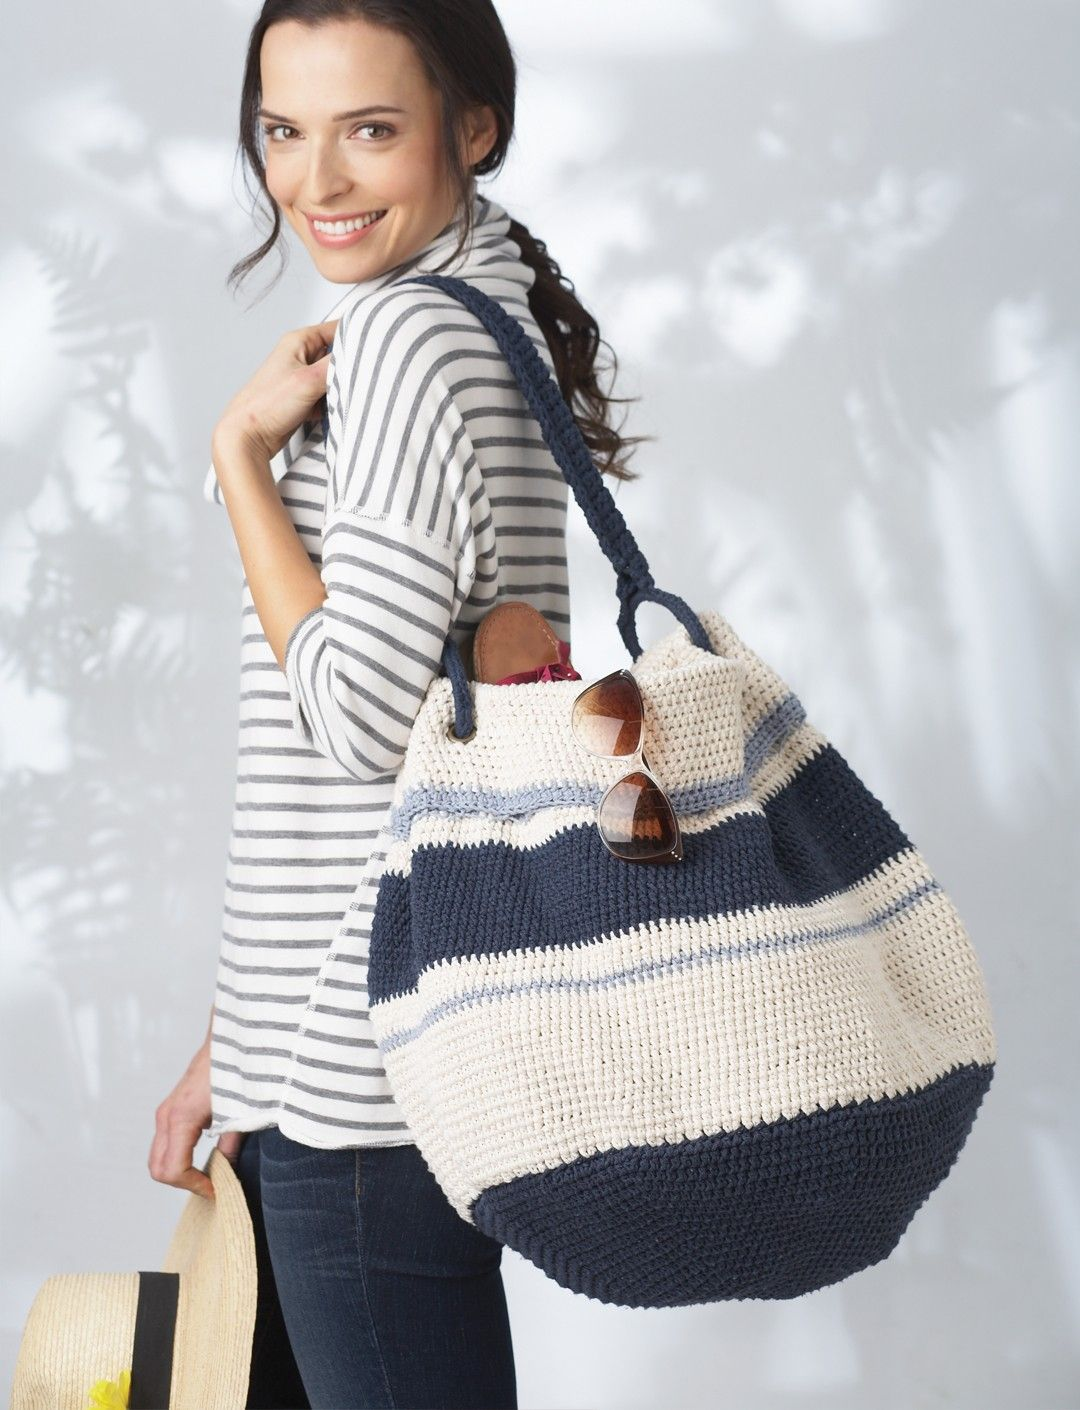 Yarnspirations.com - Bernat Nautical Hobo Bag - Patterns ...